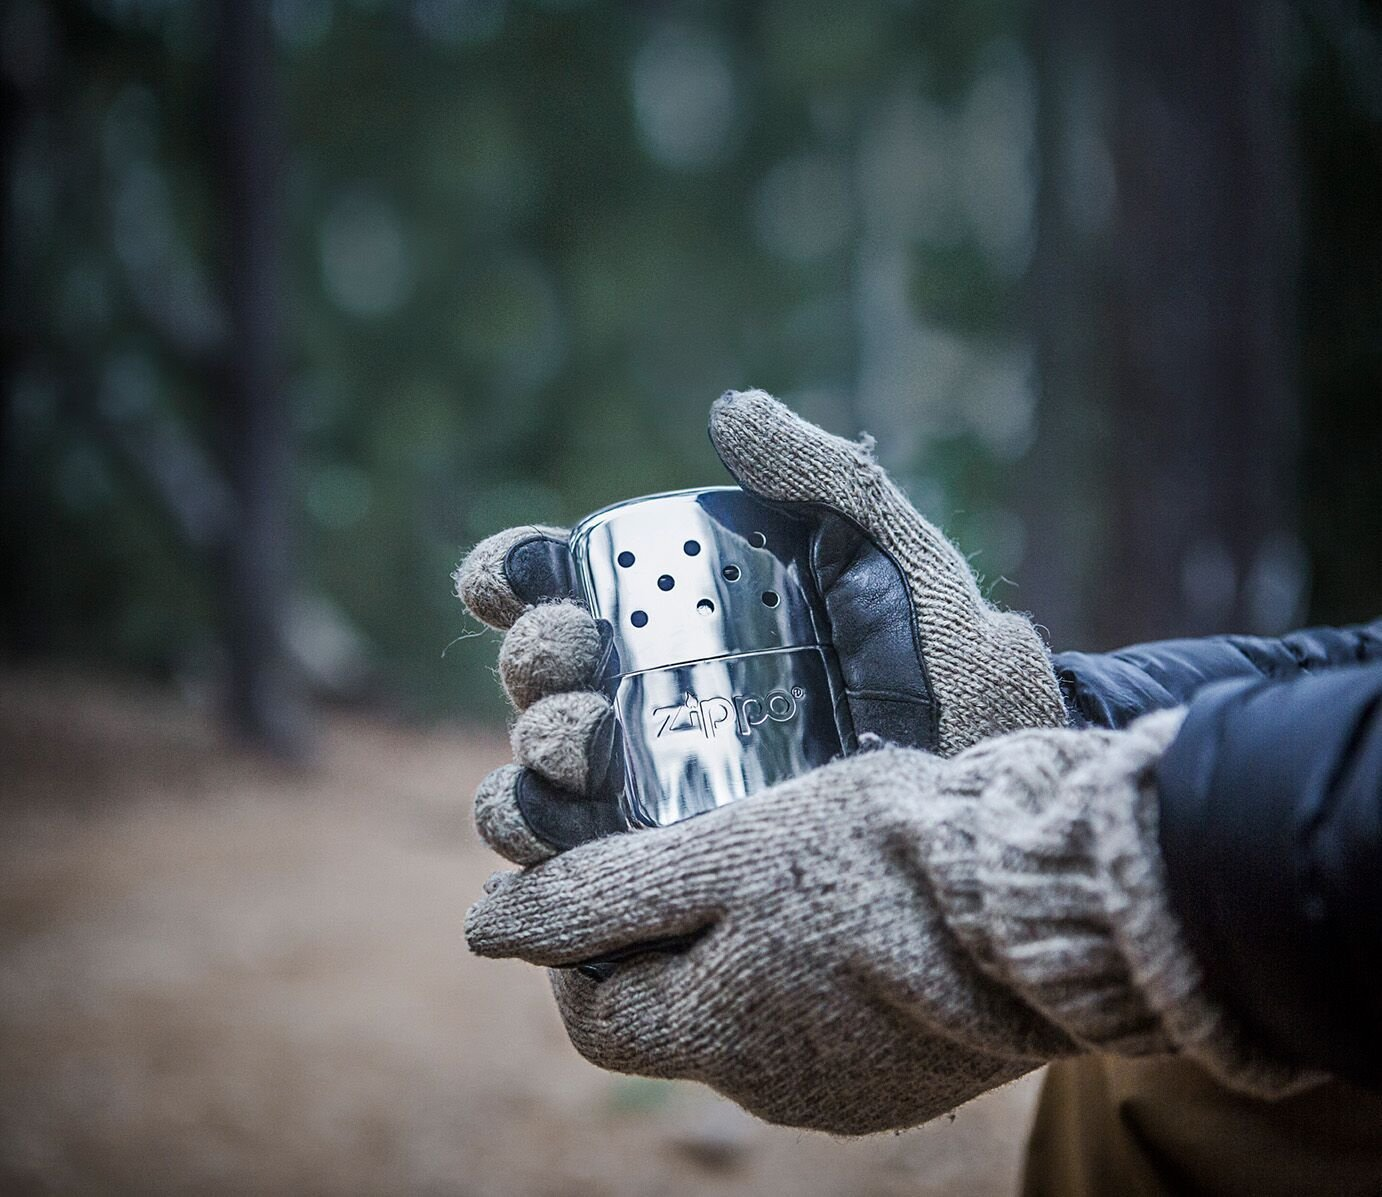 An in depth review of thge best zippo hand warmers in 2018